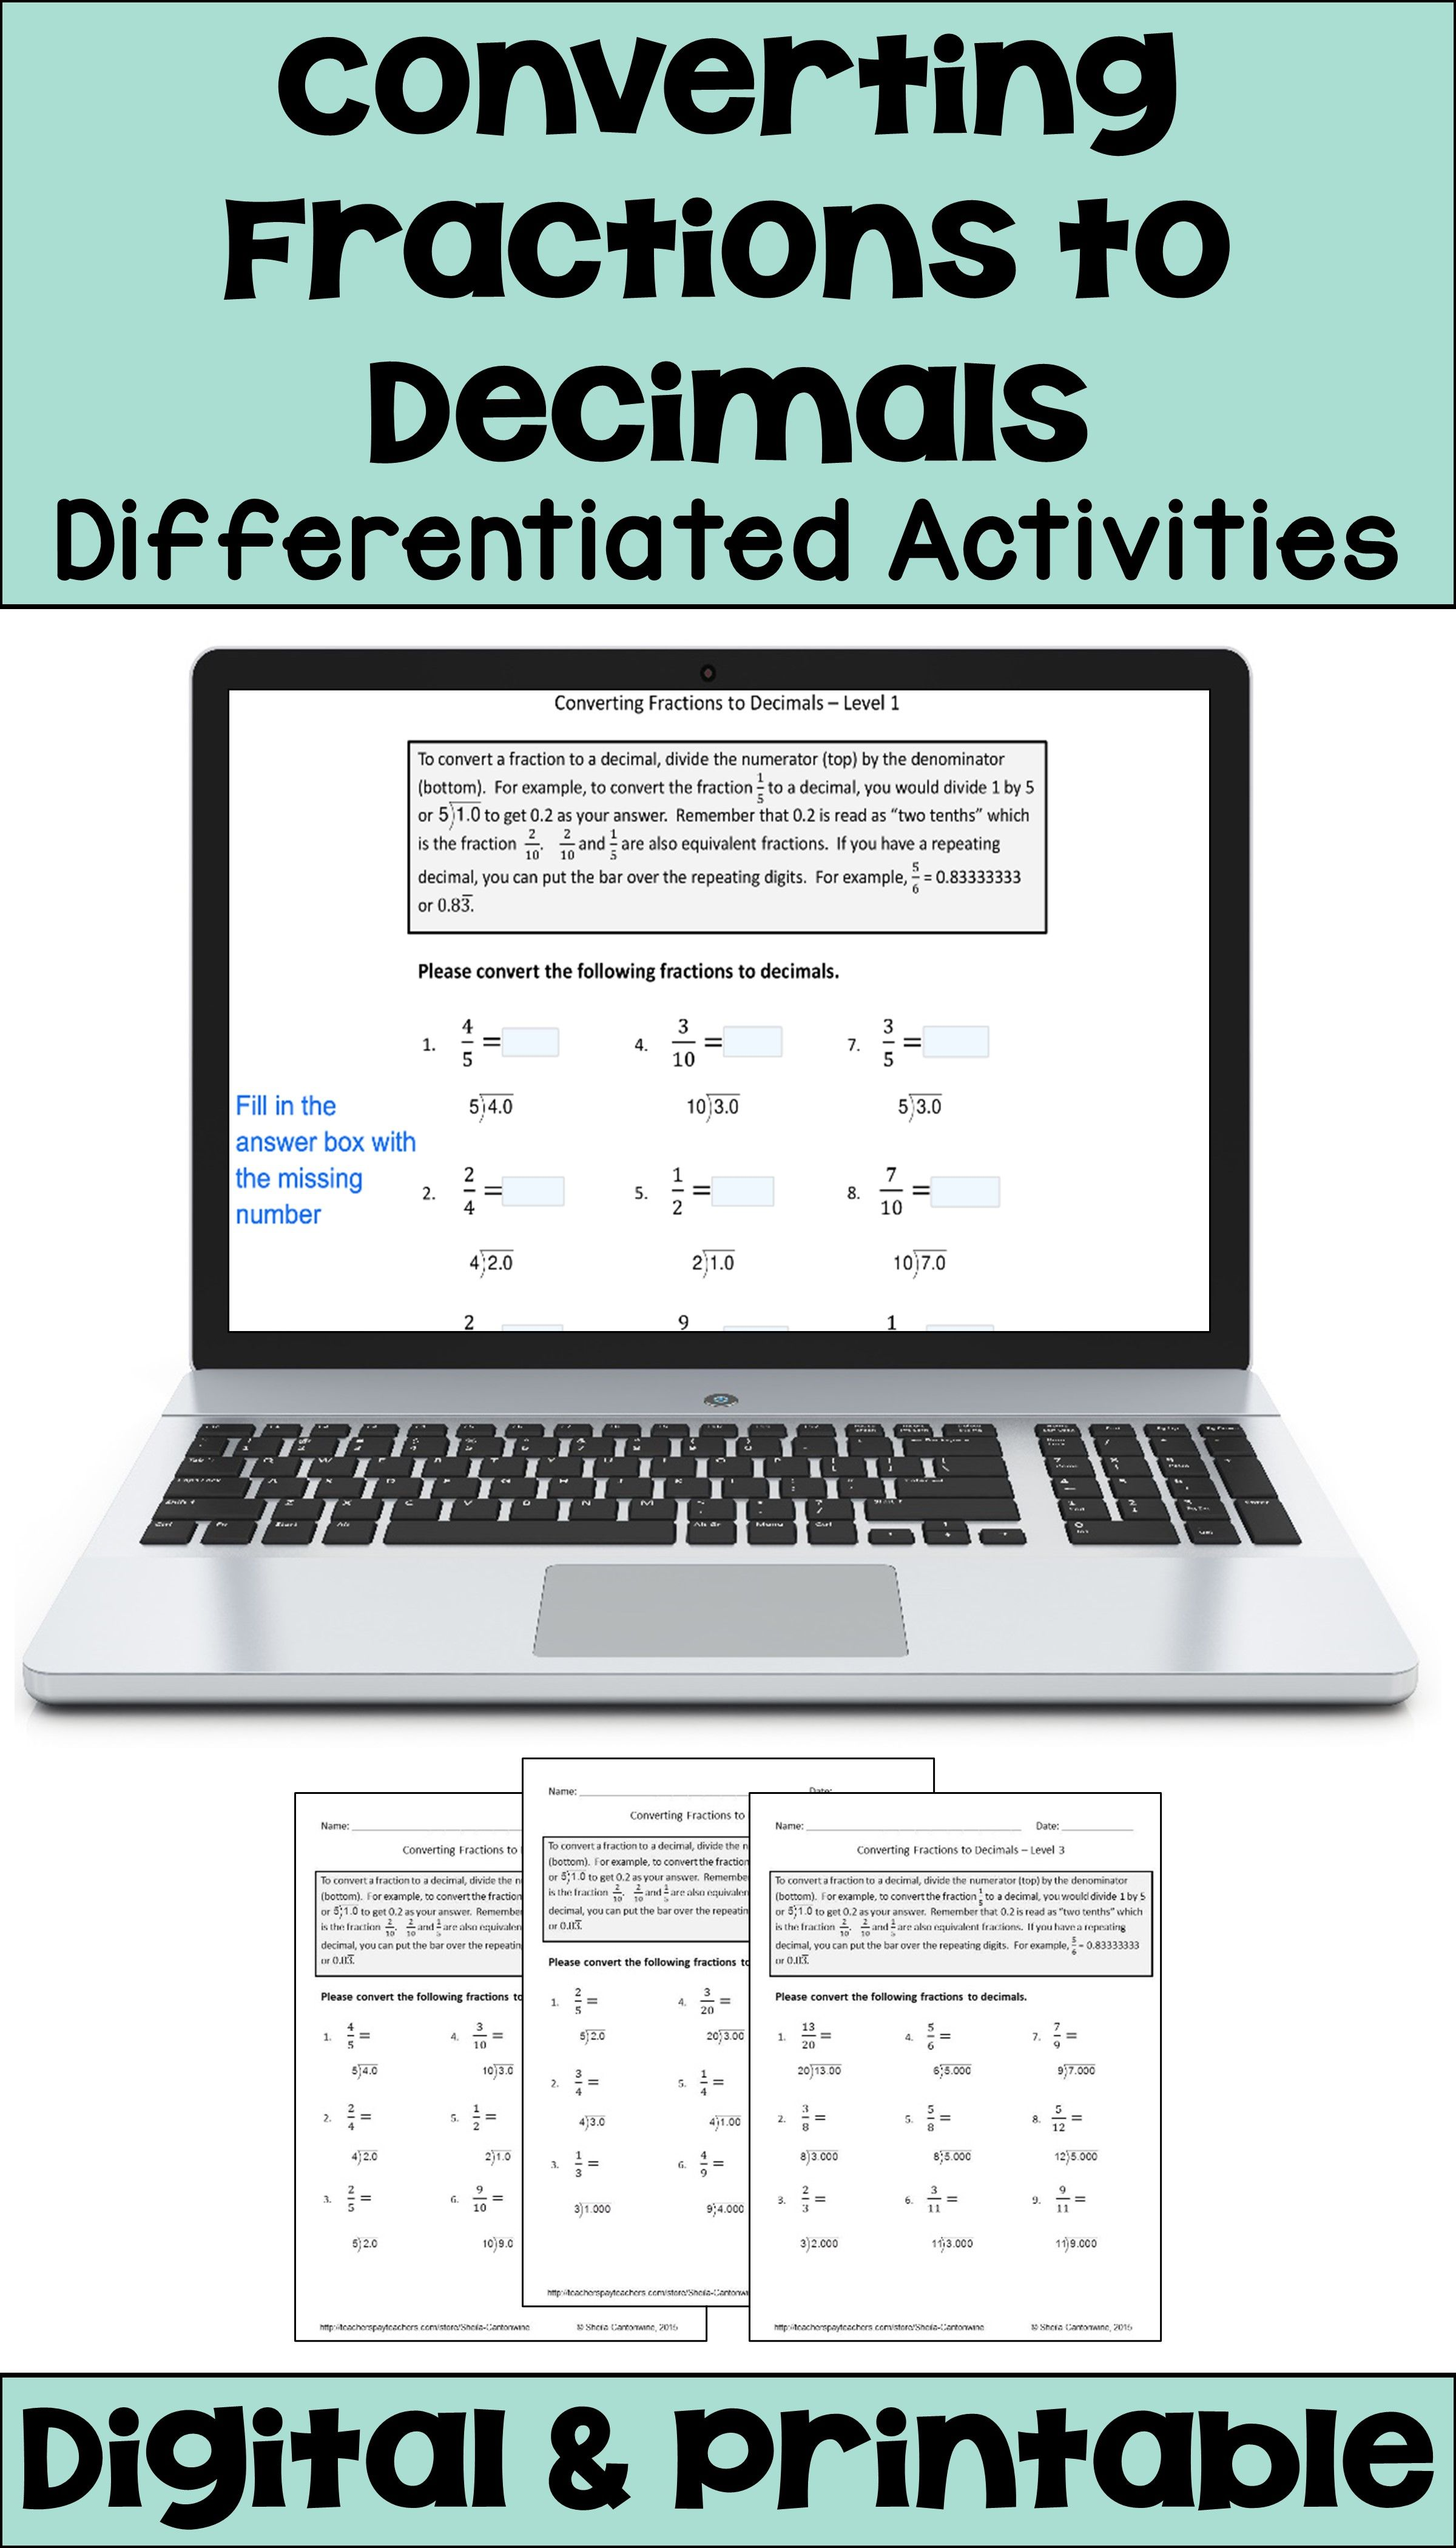 small resolution of Converting Fractions to Decimals Differentiated Activities with Digital and  Printable Opti… in 2020   Converting fractions